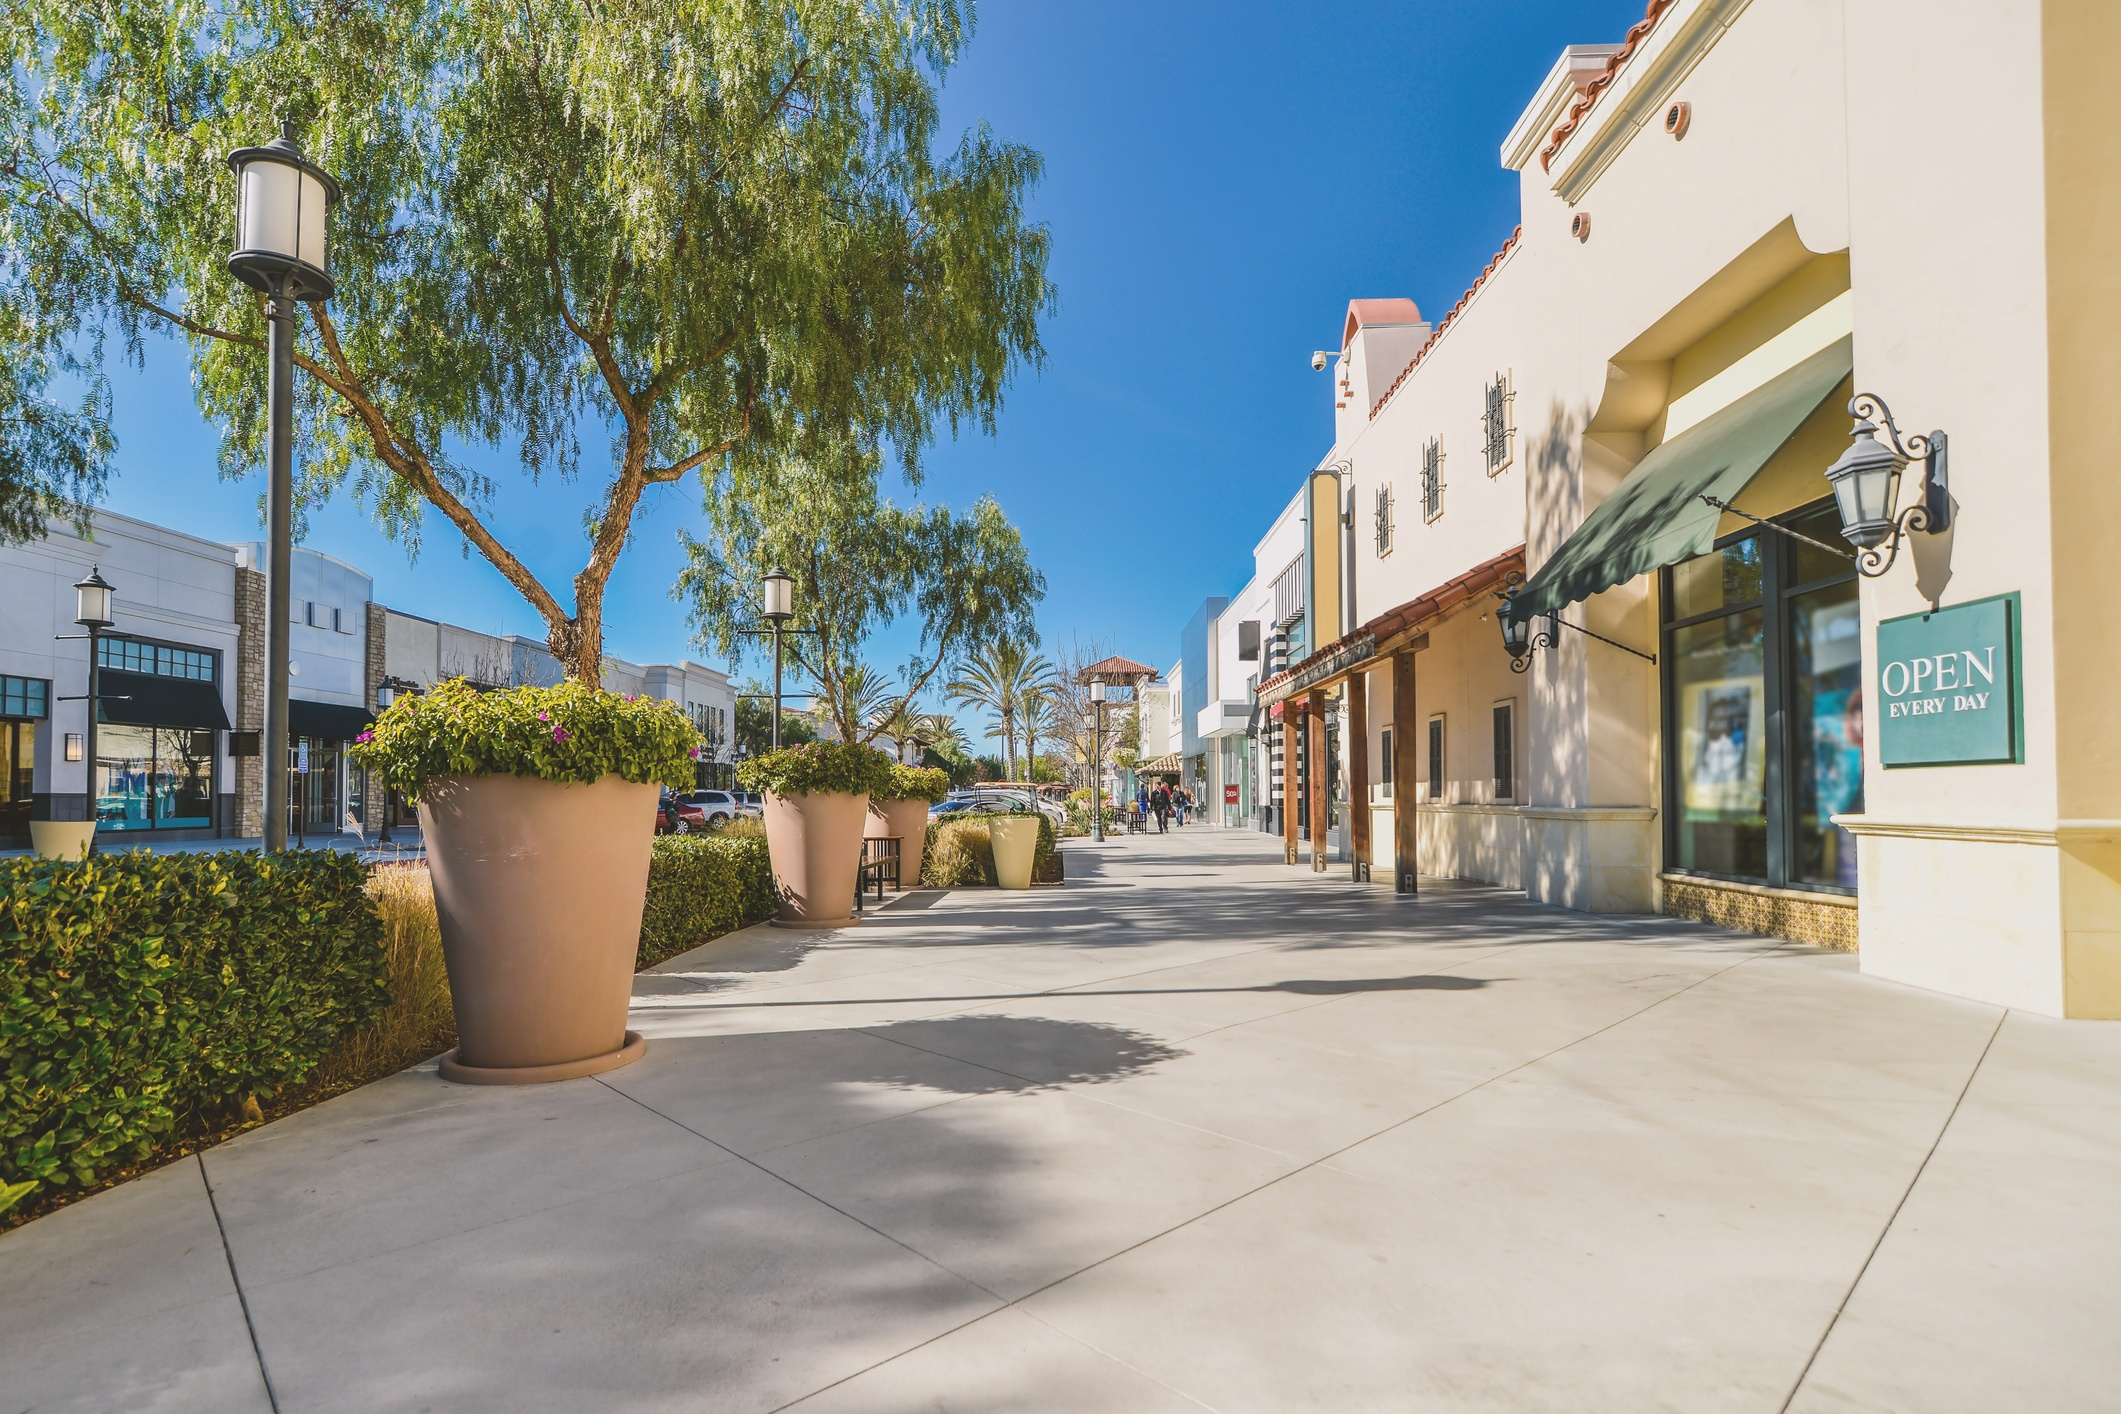 Obtaining Retail Space for Lease the Right Way